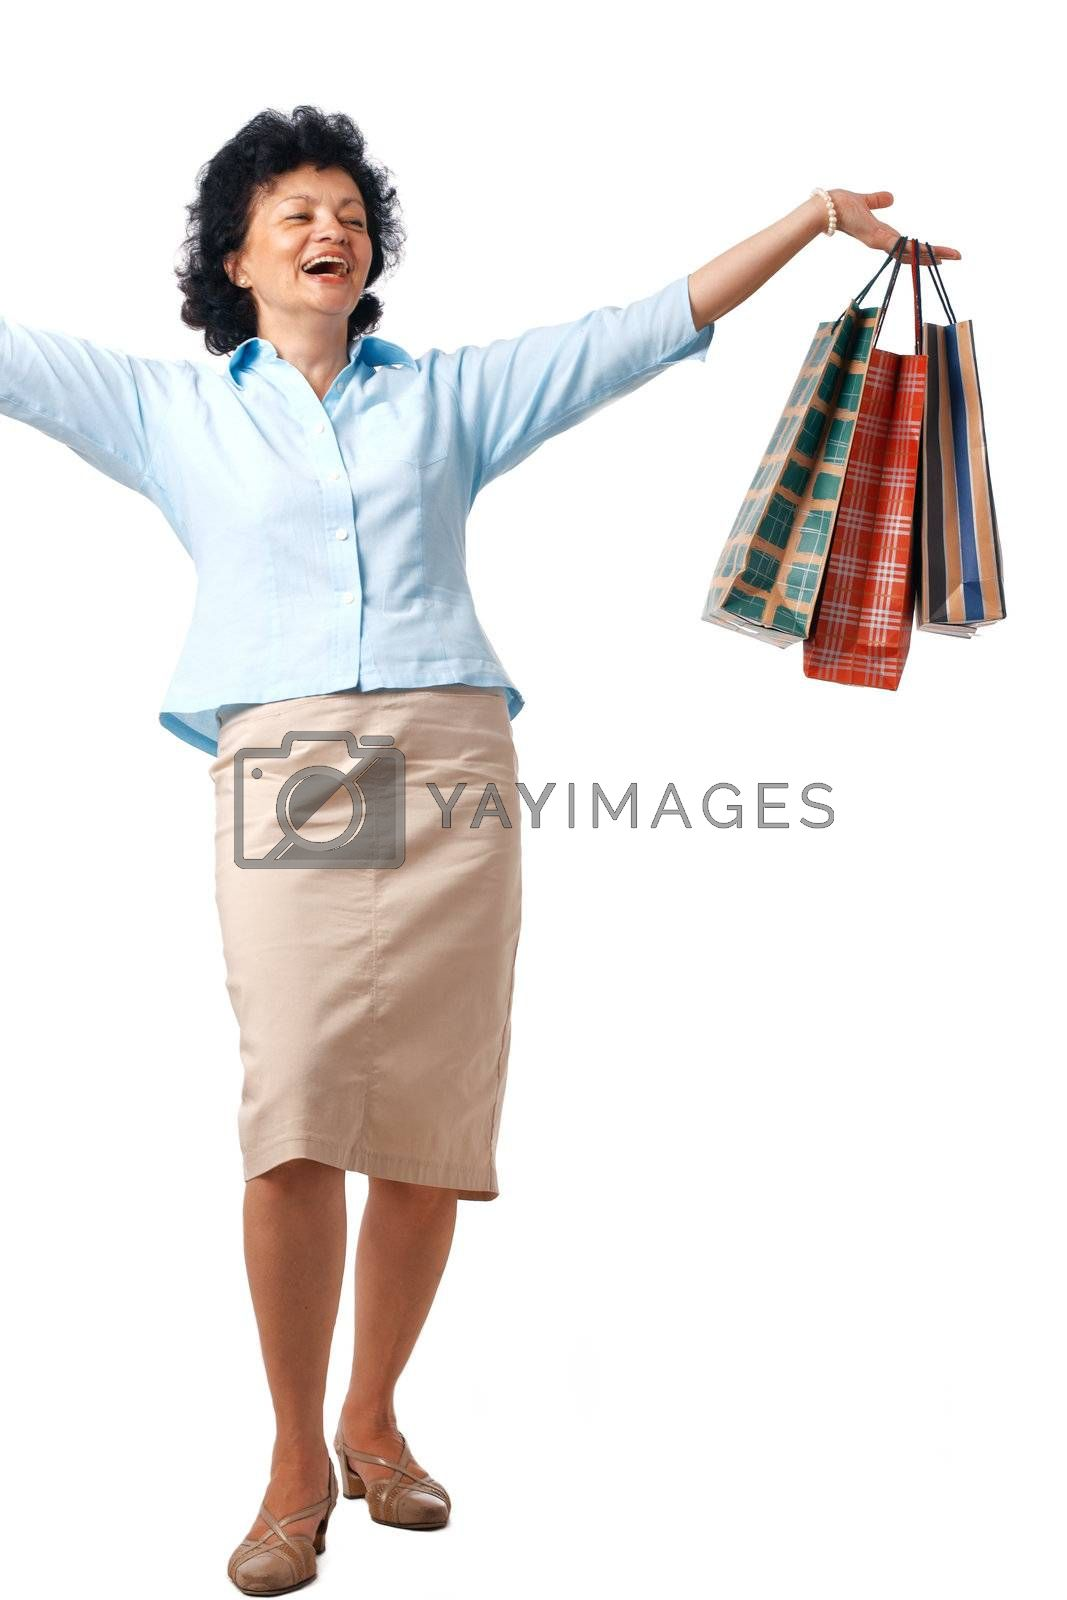 Senior Woman with shopping bags over white background.